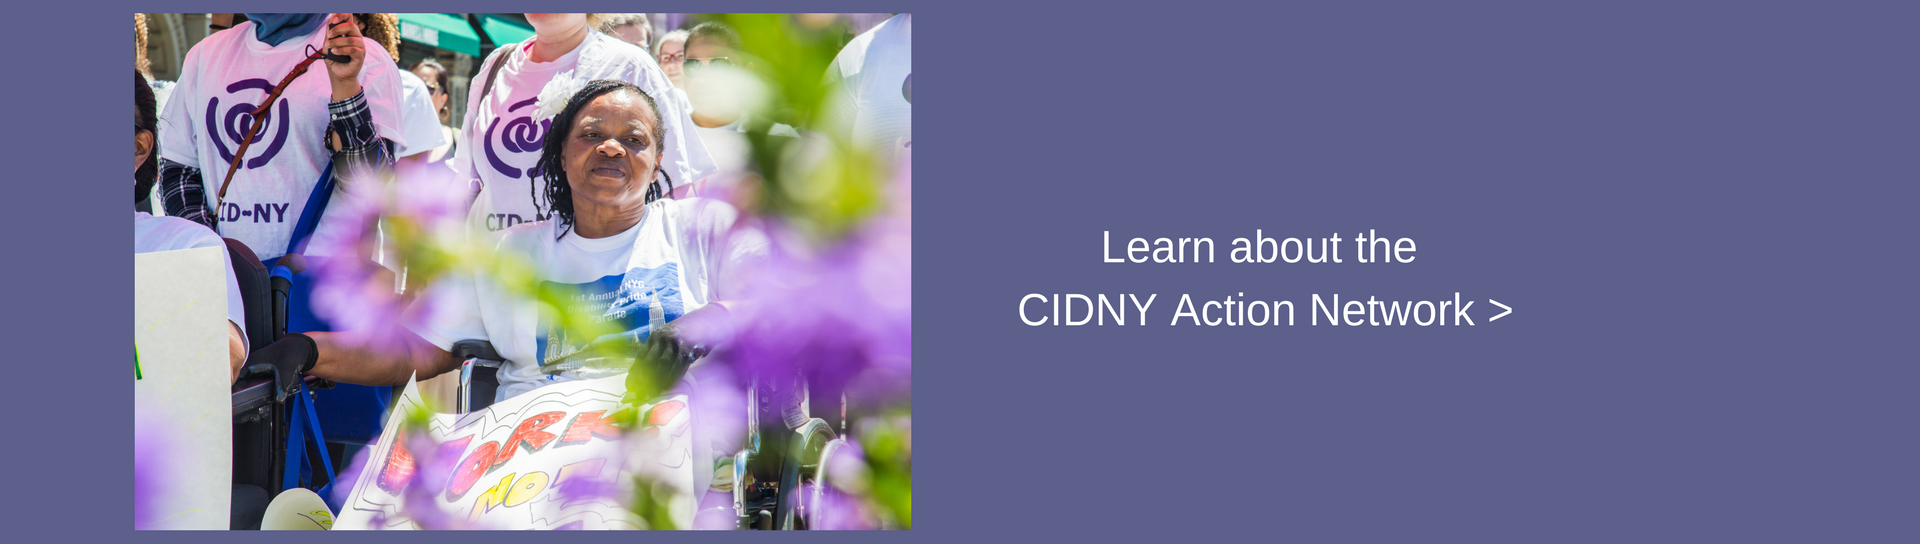 Learn about the CIDNY Action Network.